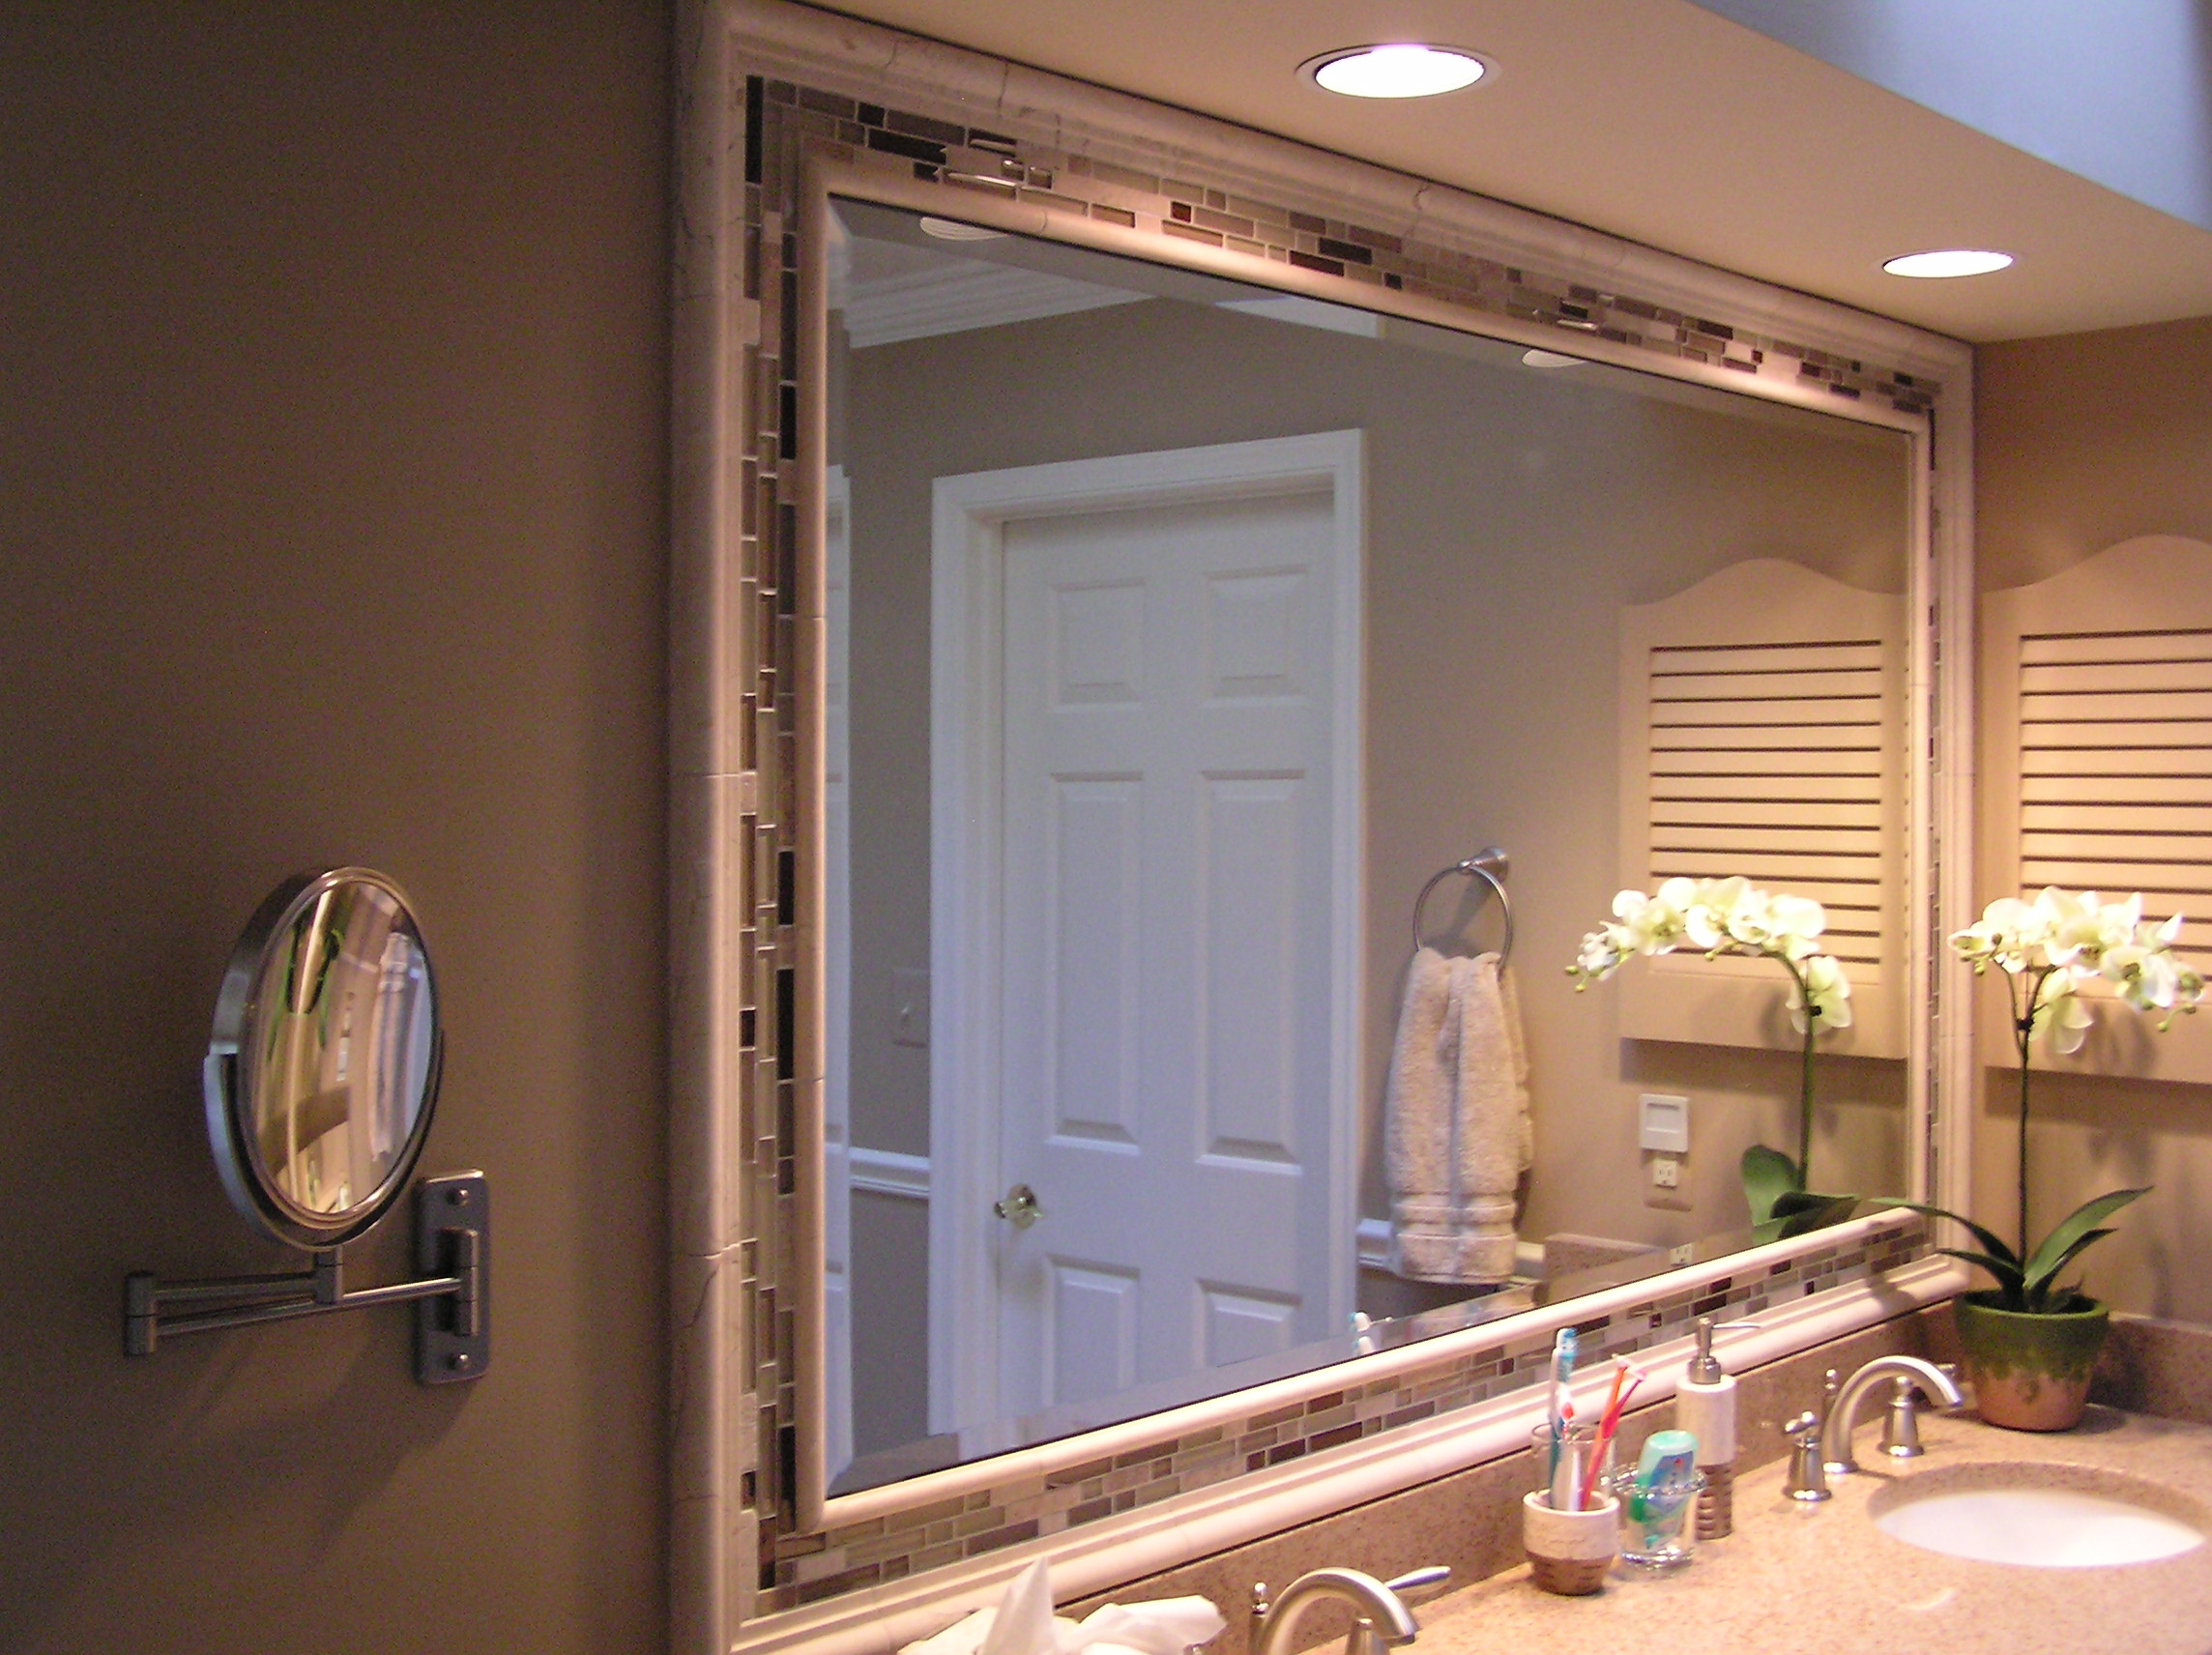 Bathroom vanity mirror ideas large and beautiful photos photo to select bathroom vanity - Decorating bathroom mirrors ideas ...